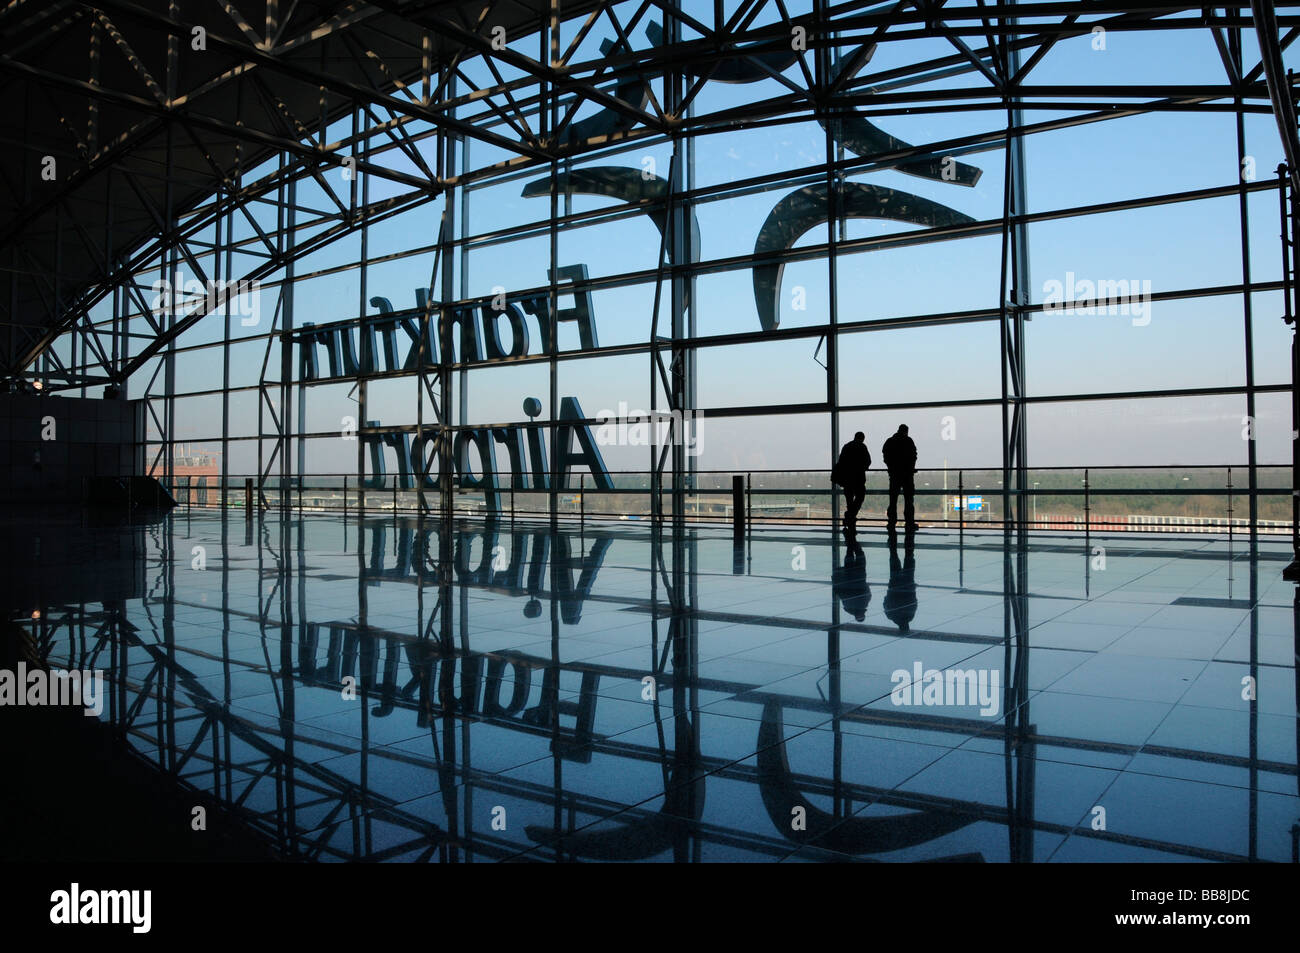 Terminal 2 at the Frankfurt airport, SkyLine level, view to the north, Frankfurt, Hesse, Germany - Stock Image